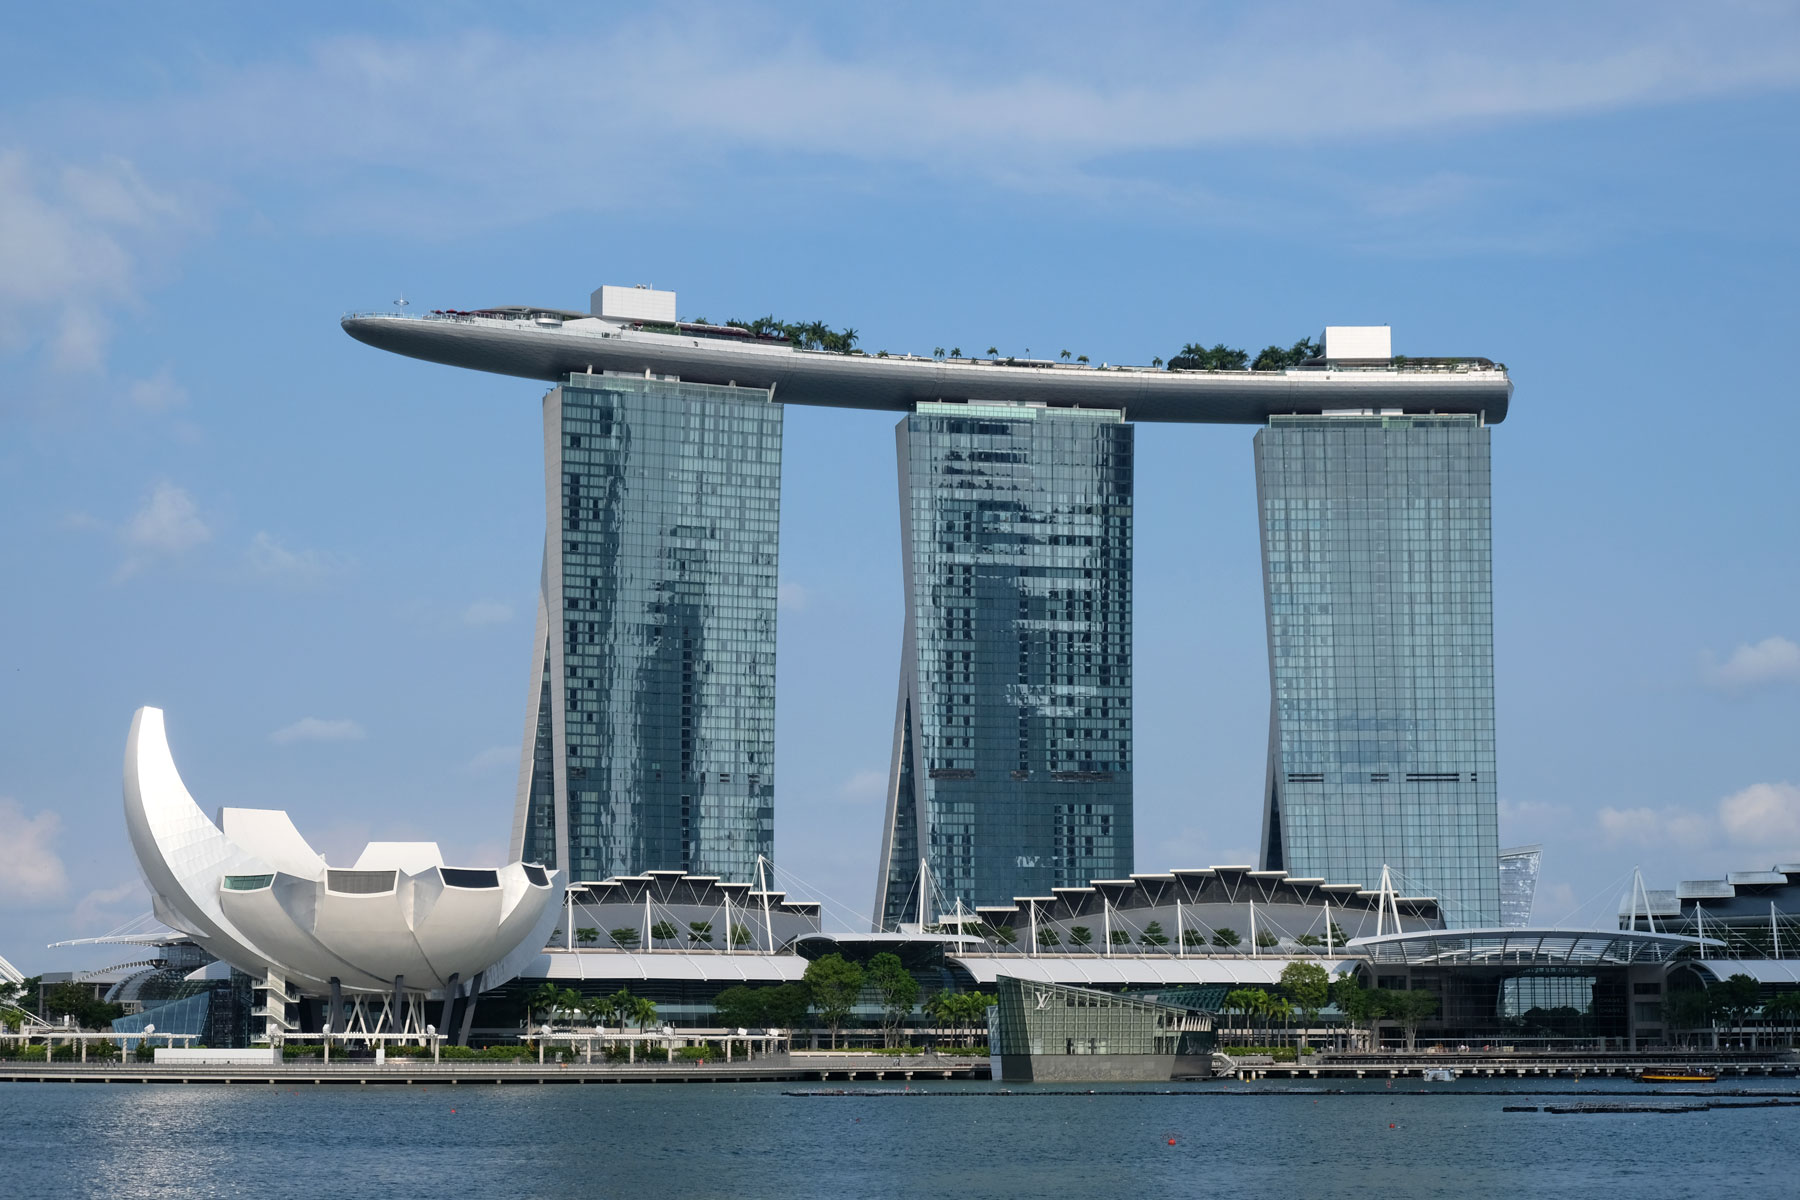 Das Marina Bay Sands Hotel in Singapur.